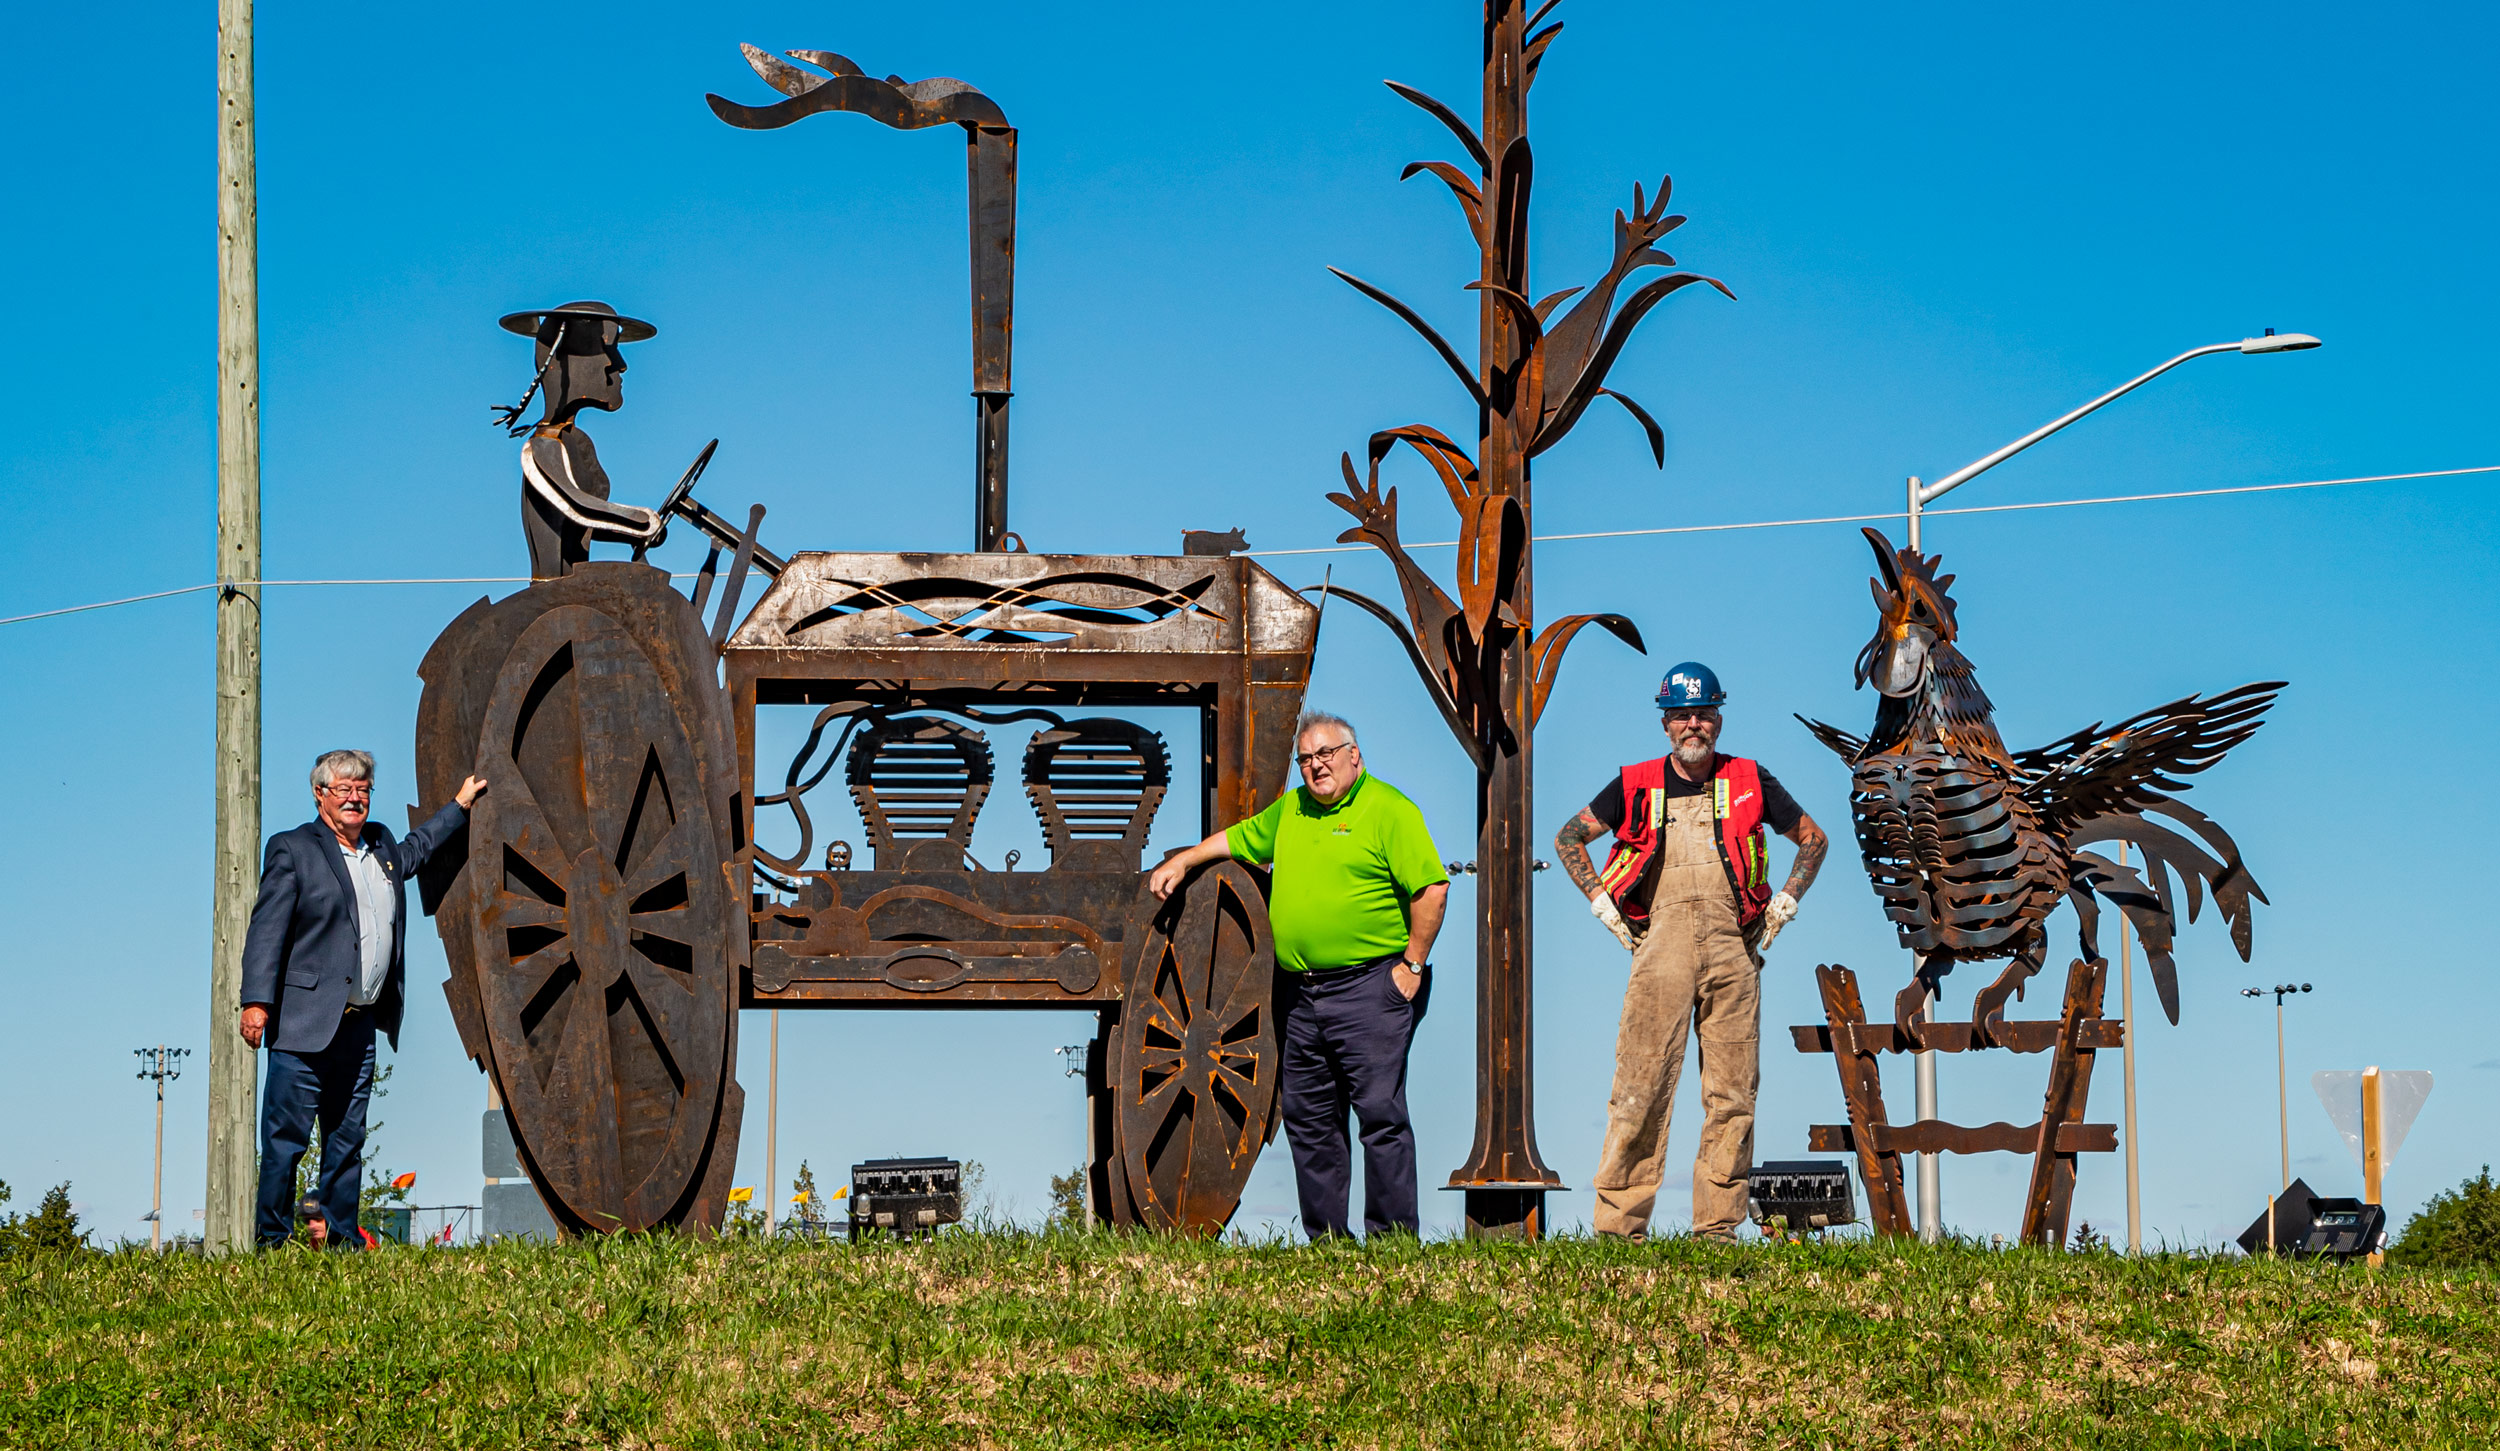 Public Art Installation recognizes long term relationship between City and County